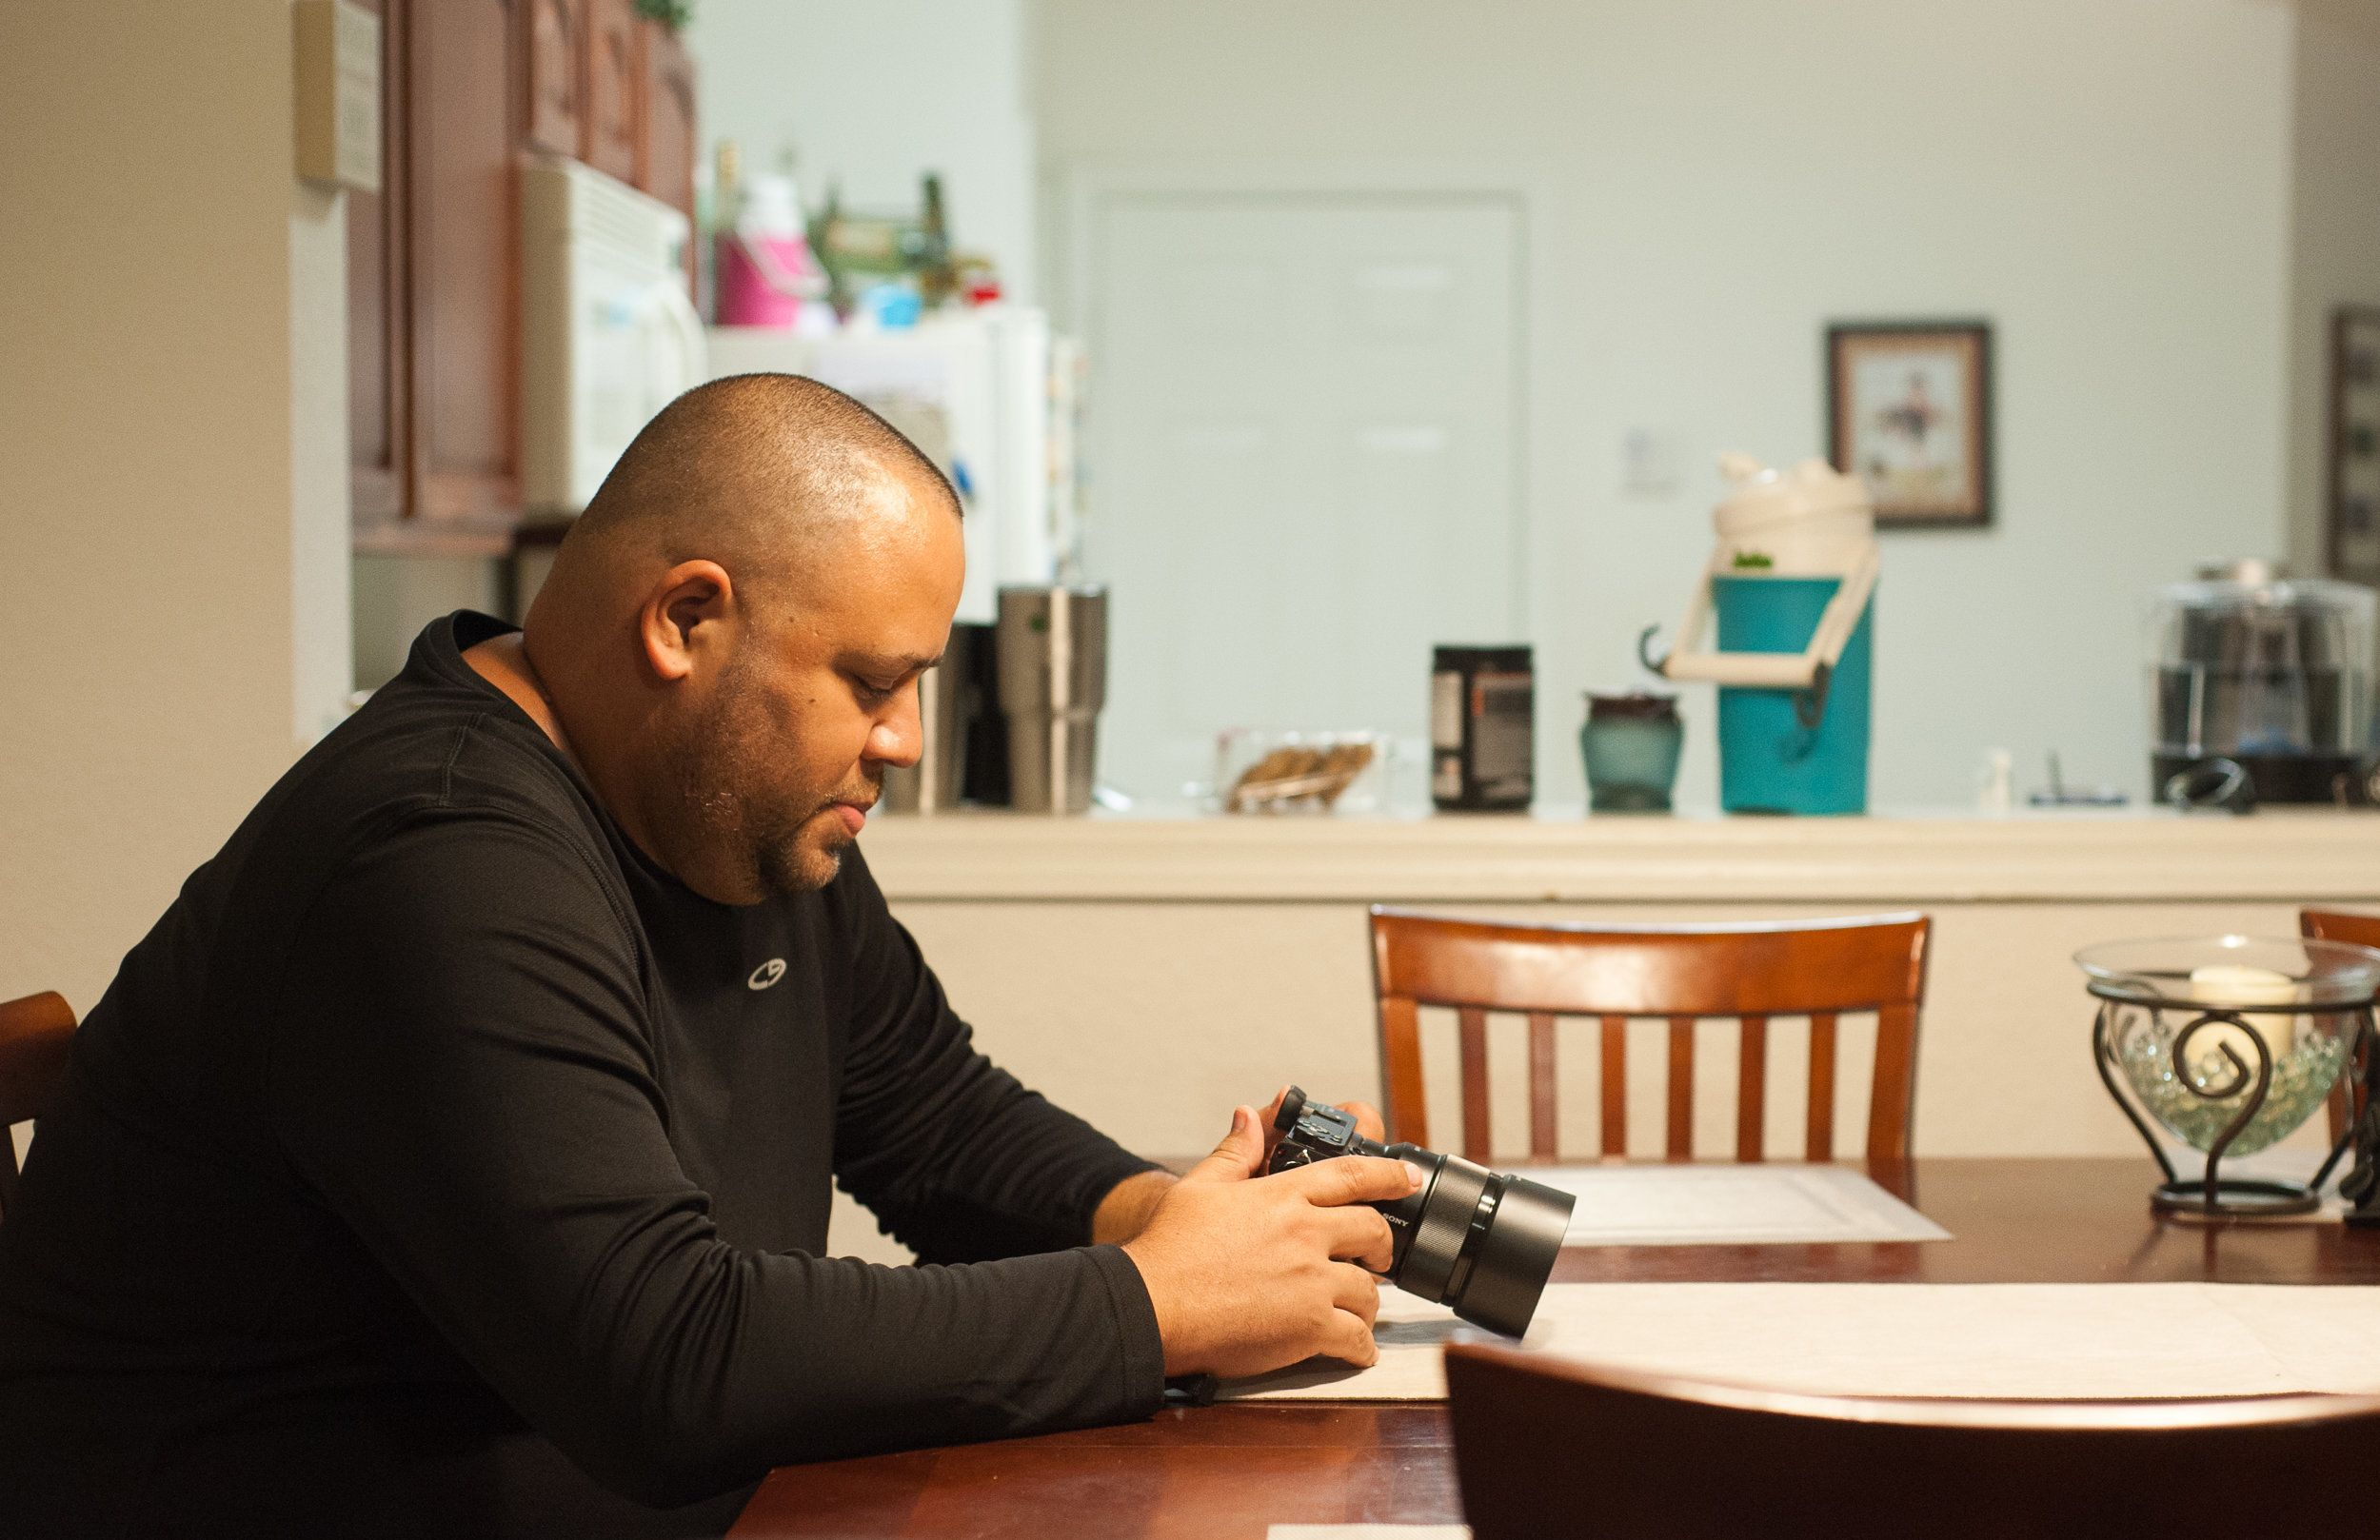 Delgado, in his home, looks at his camera. He took up photography after the Pulse shooting as a way to cope with his PTSD.